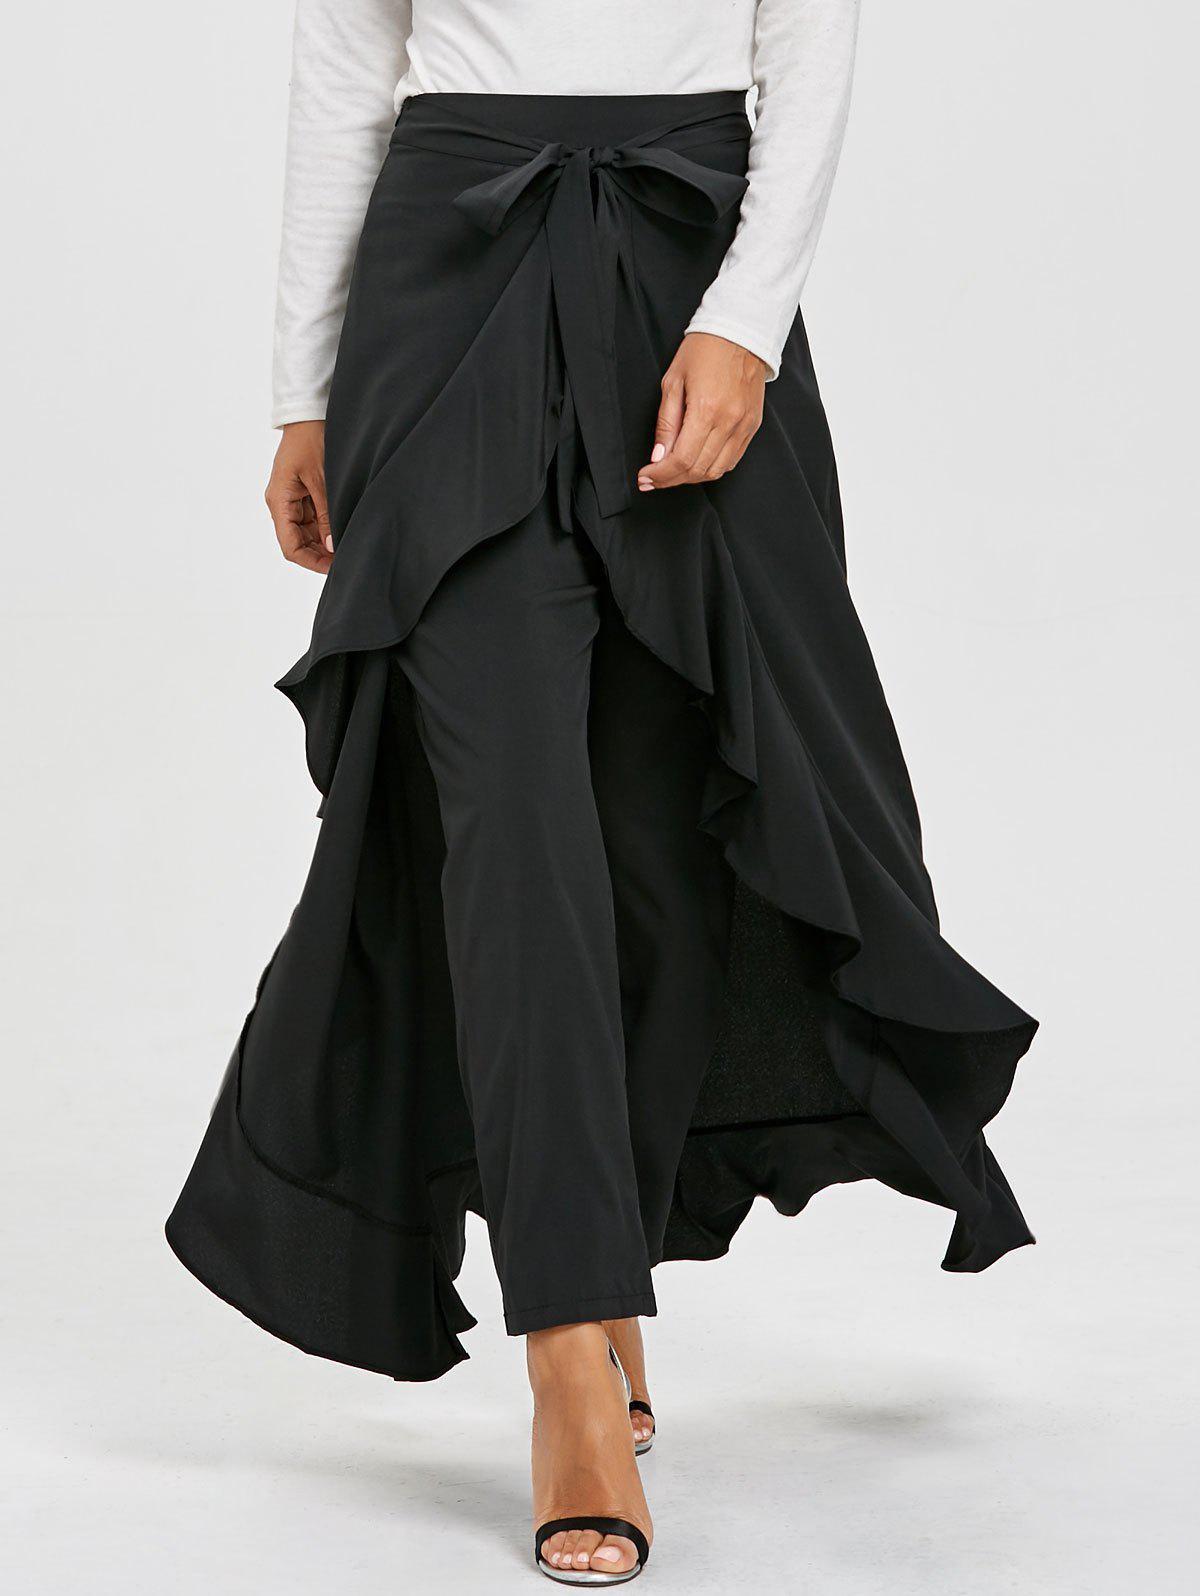 Hot Ruffle Tiered Skirt Pants